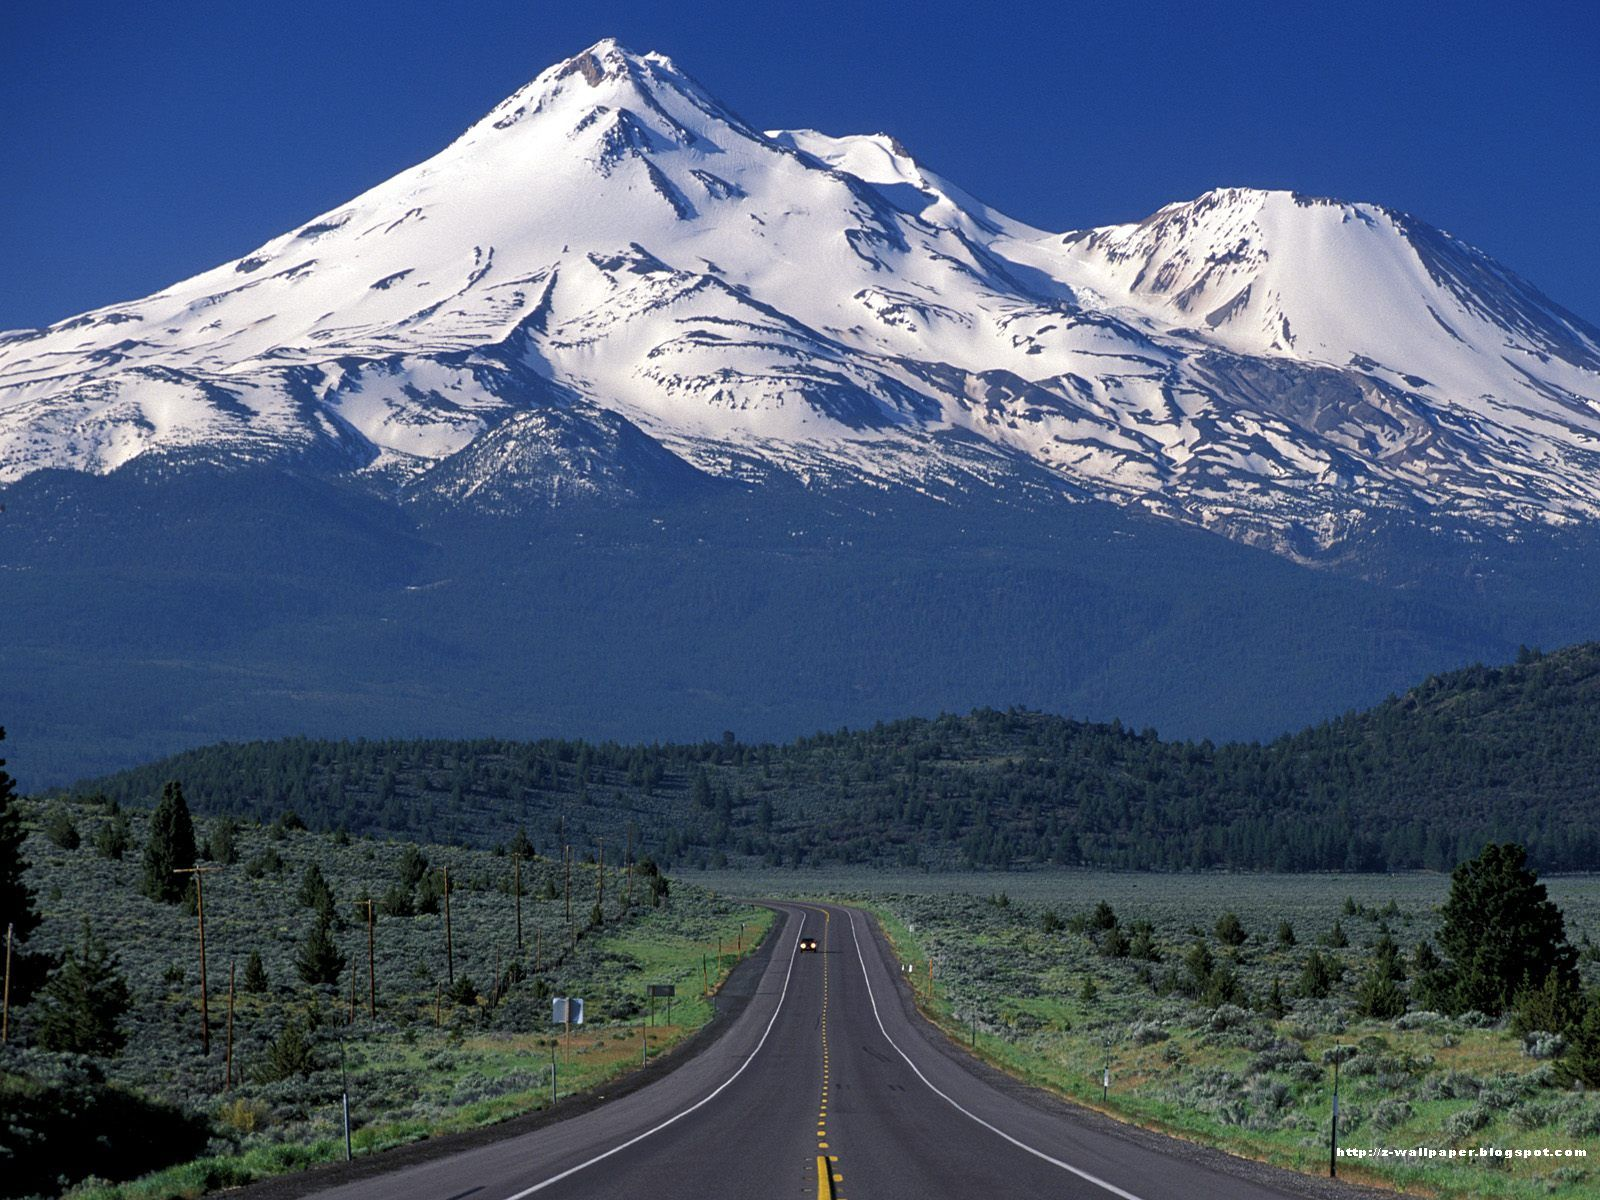 Comments to Scenic Mt Shasta 1600x1200